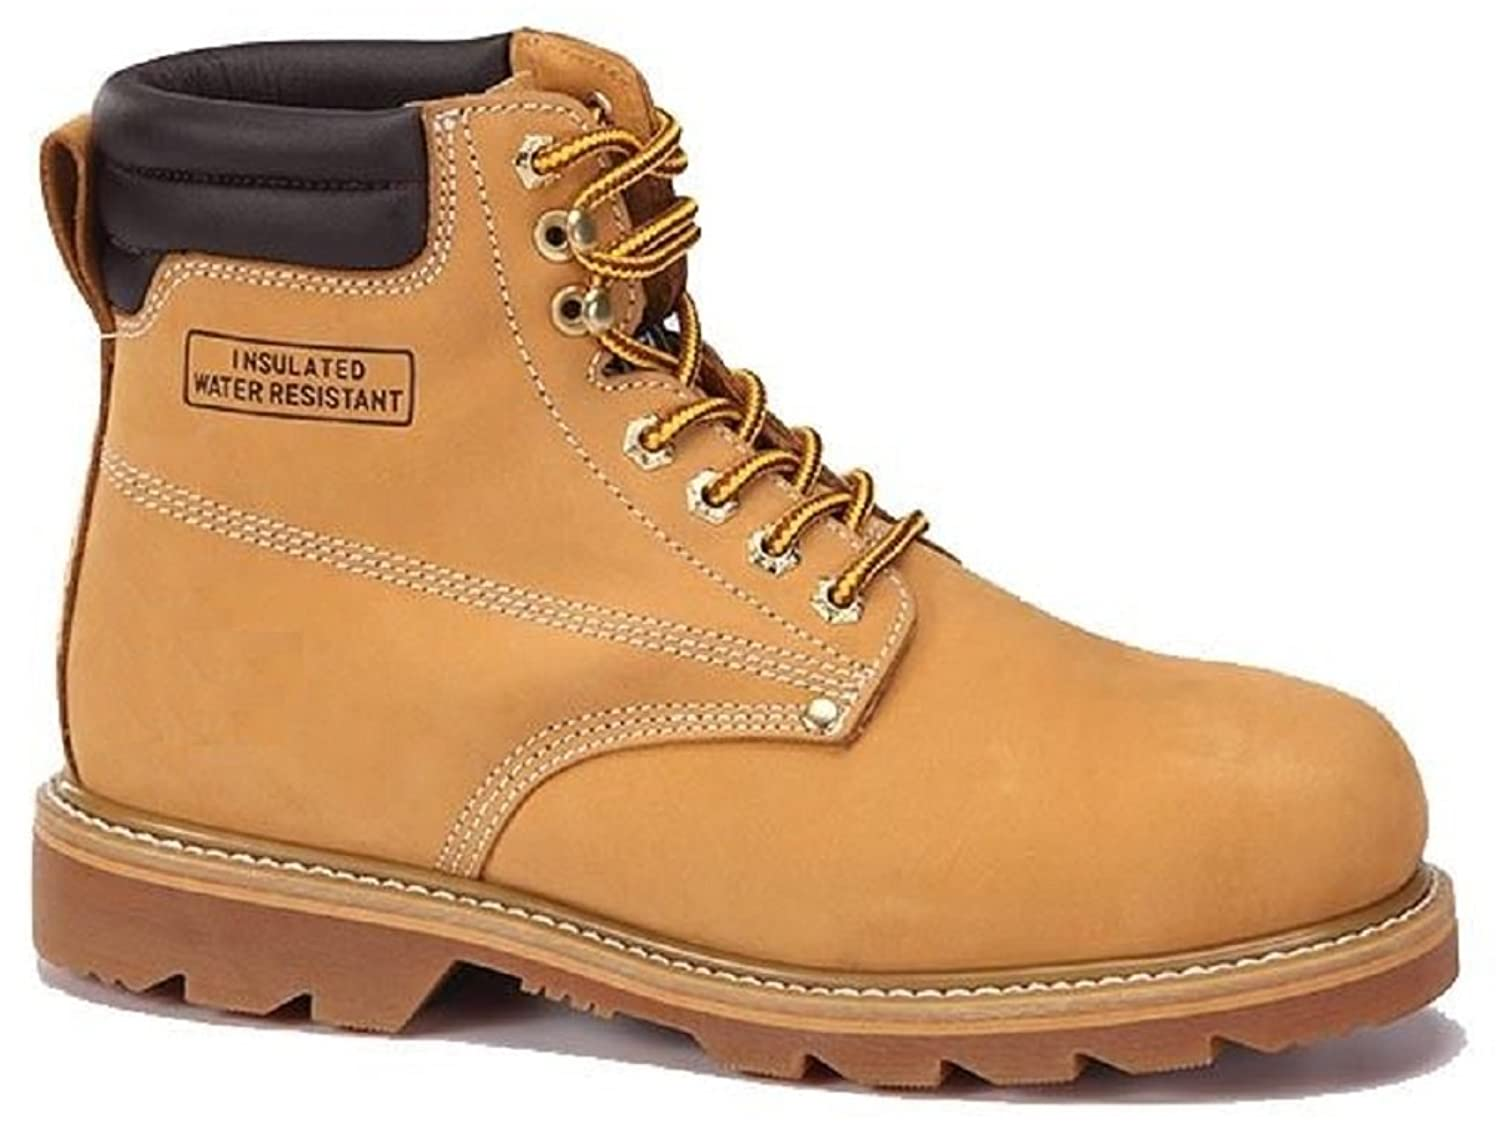 Men's Construction Steel Toe Boots Genuine Leather Short Engineer, Insulated and water Resistant Wheat Nubuck shoes Sizes 7-13 purnima sareen sundeep kumar and rakesh singh molecular and pathological characterization of slow rusting in wheat